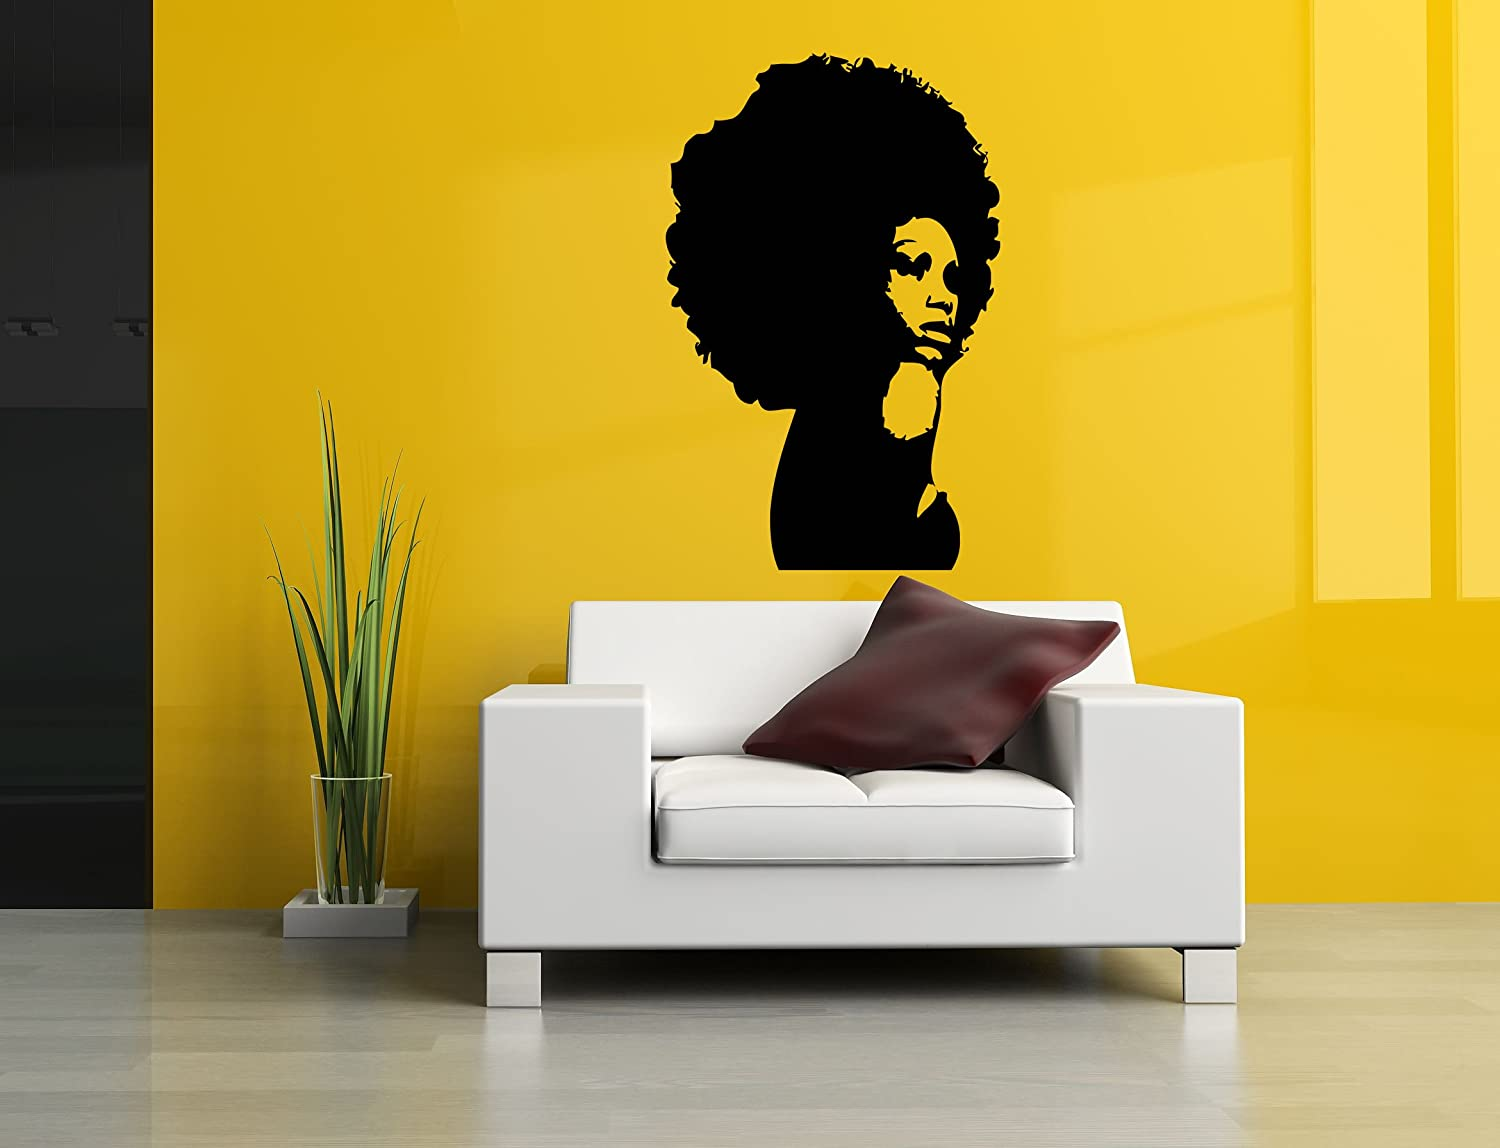 Amazon.com: Wall Room Decor Art Vinyl Sticker Mural Decal Afro Girl ...